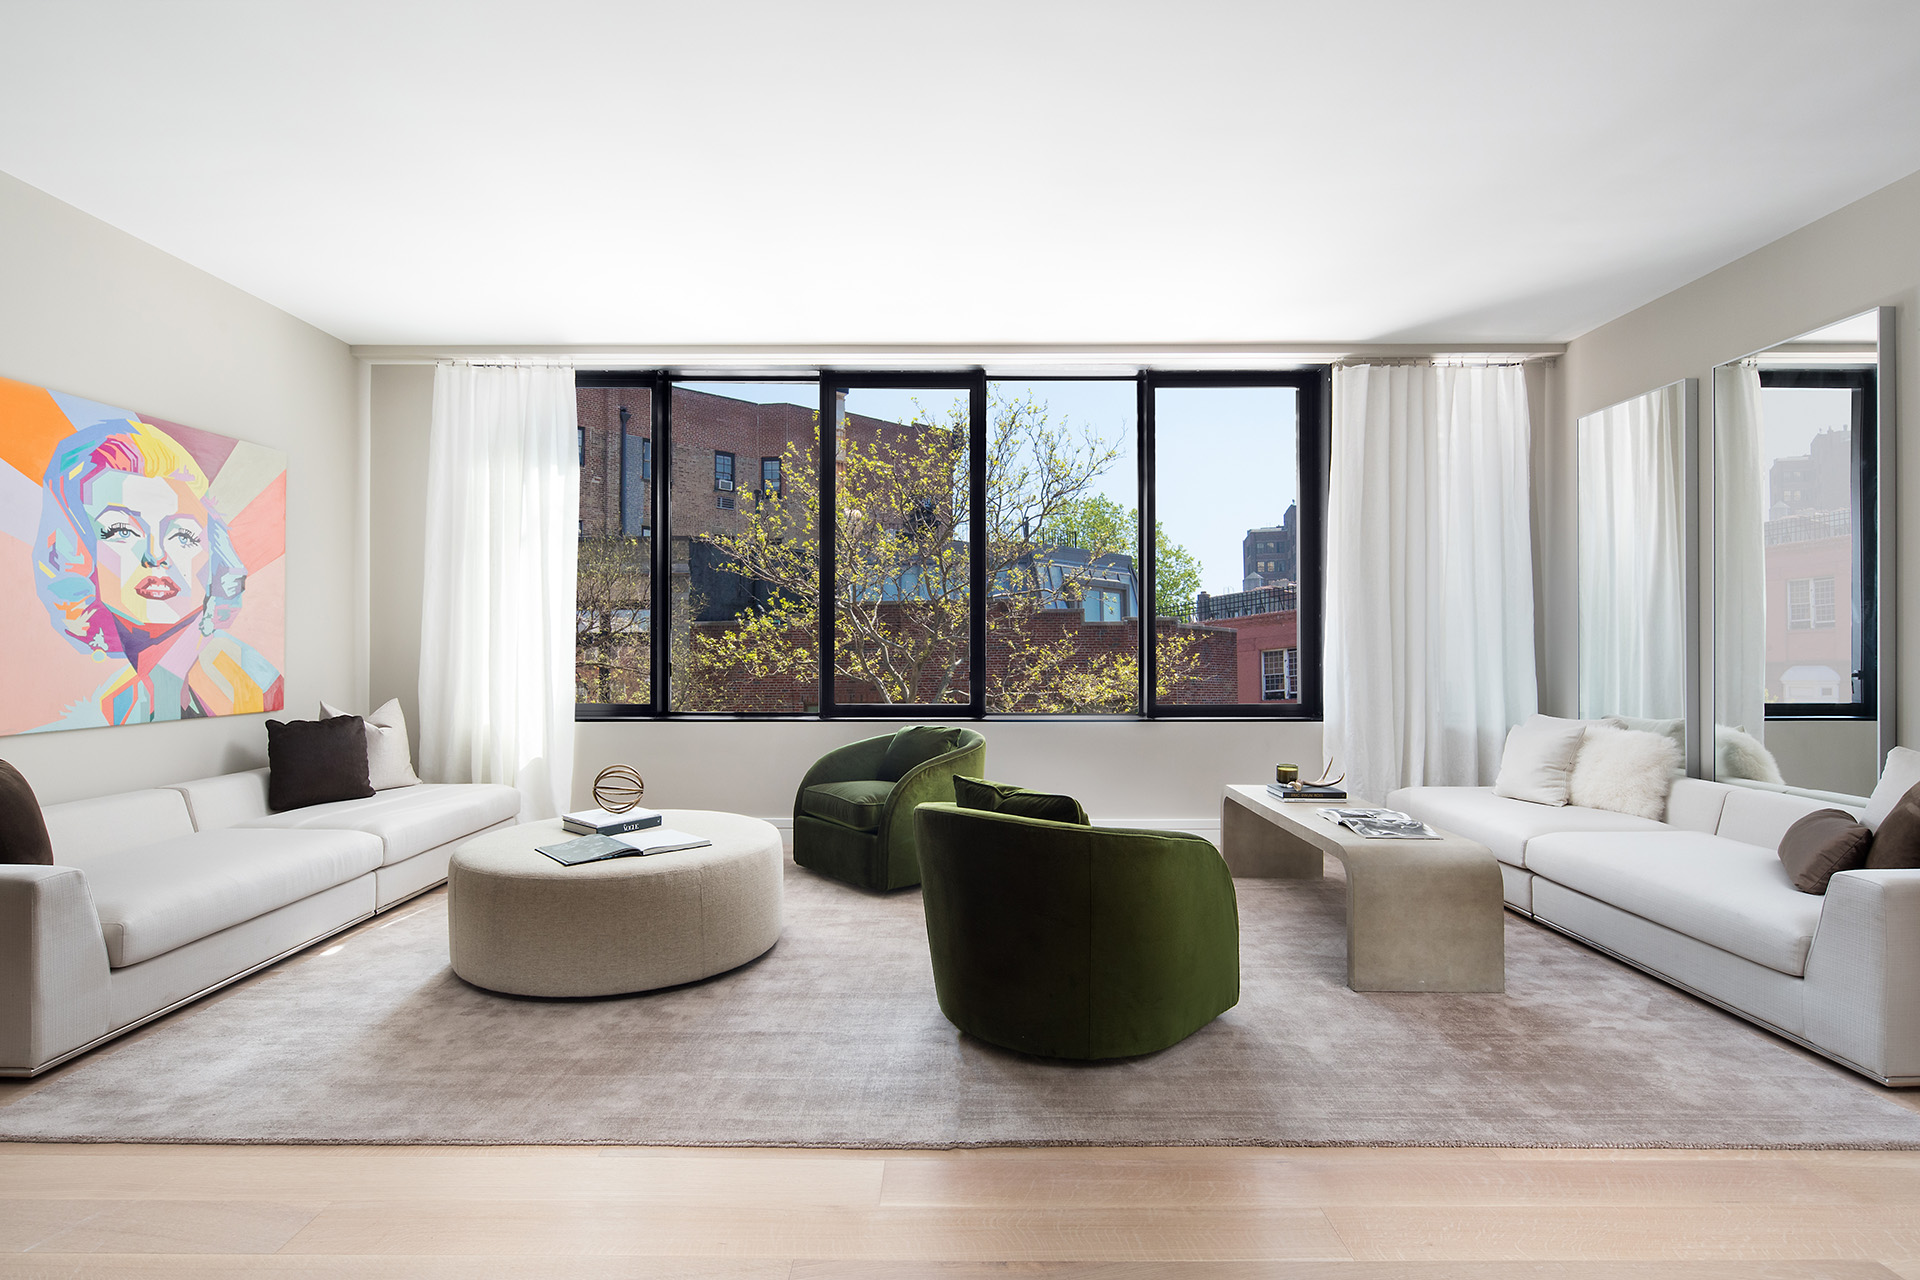 175 West 10th Street: Apt 4 - $6,200,000 // 3 Beds // 3.5 Baths // 2,702 SQFTA veritable paragon of urban chic that reimagines the charm and elegance of the West Village through a contemporary lens, this remarkable 3-bedroom, 3.5-bathroom residence is one of four floor-through homes beyond compare.